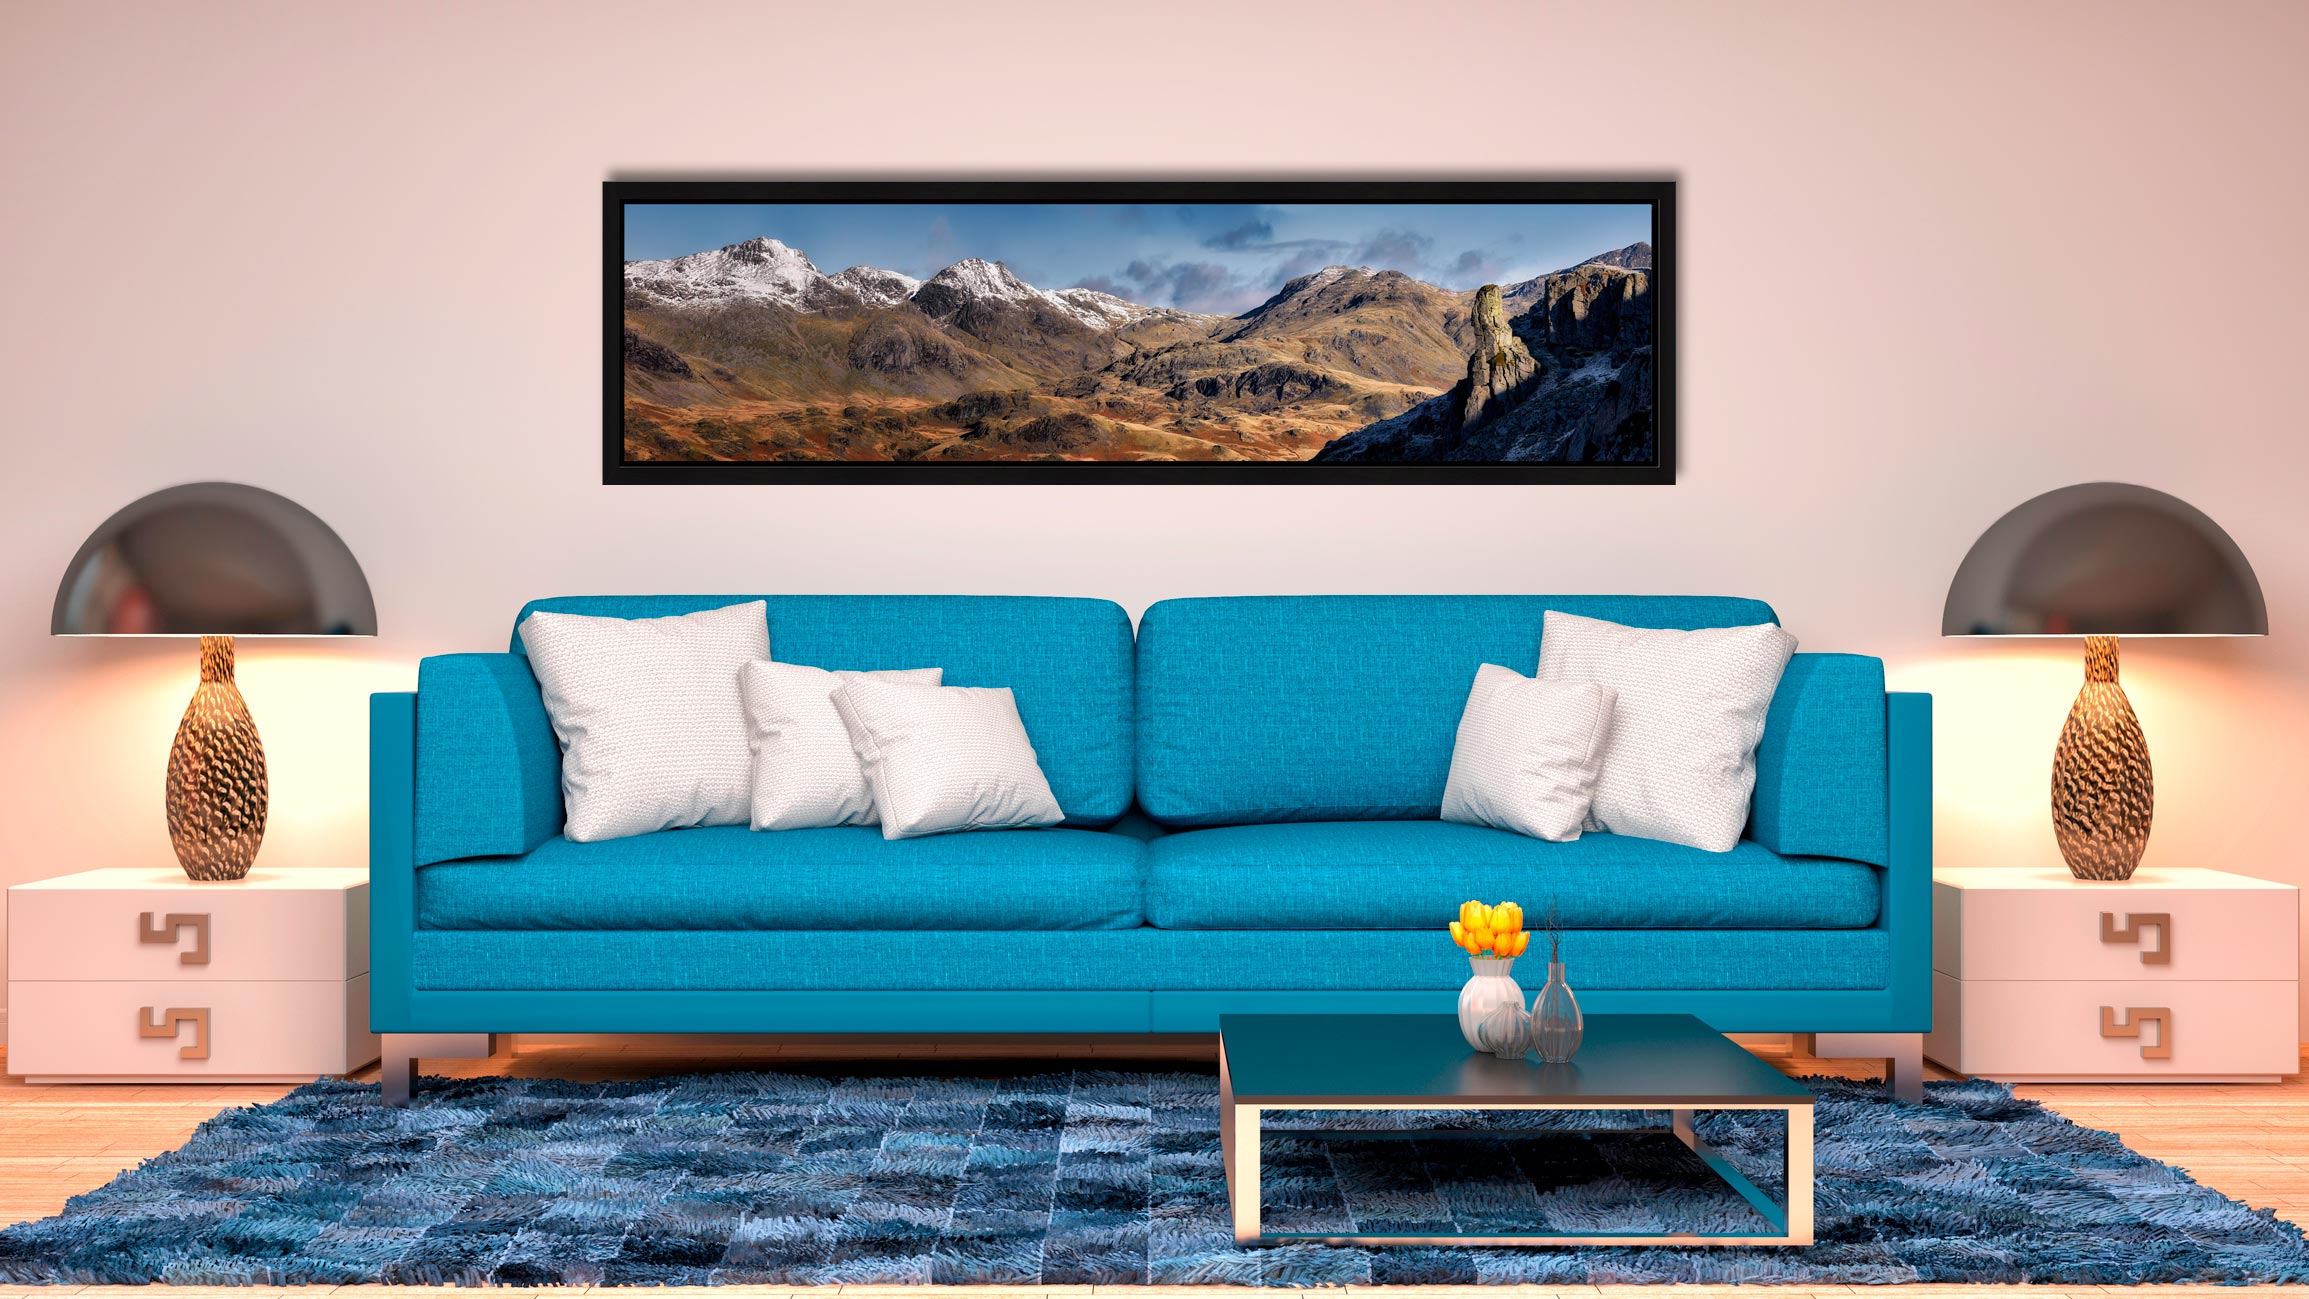 Eskdale Needle and Scafell Panorama - Black oak floater frame with acrylic glazing on Wall